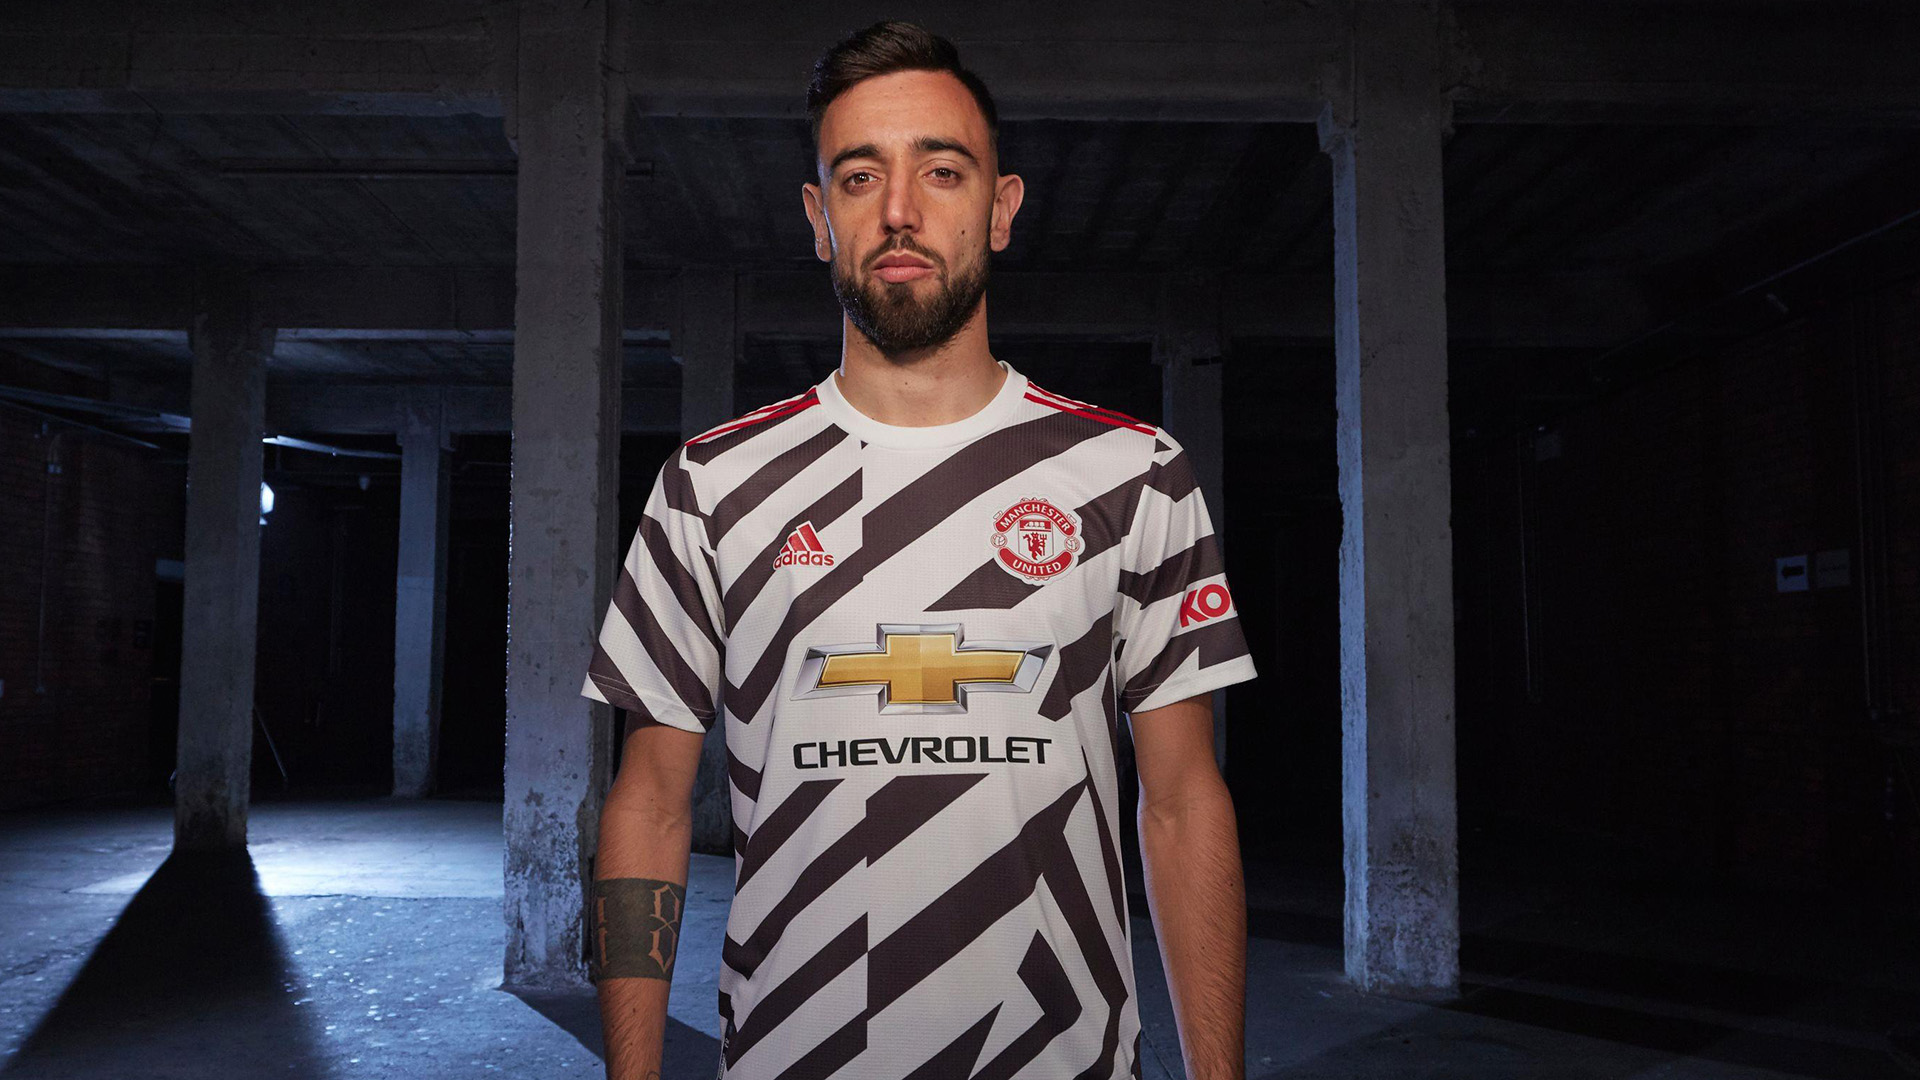 Bruno Fernandes Wins Manchester United 2019 20 Player Of The Year Award After Arriving In January Goal Com